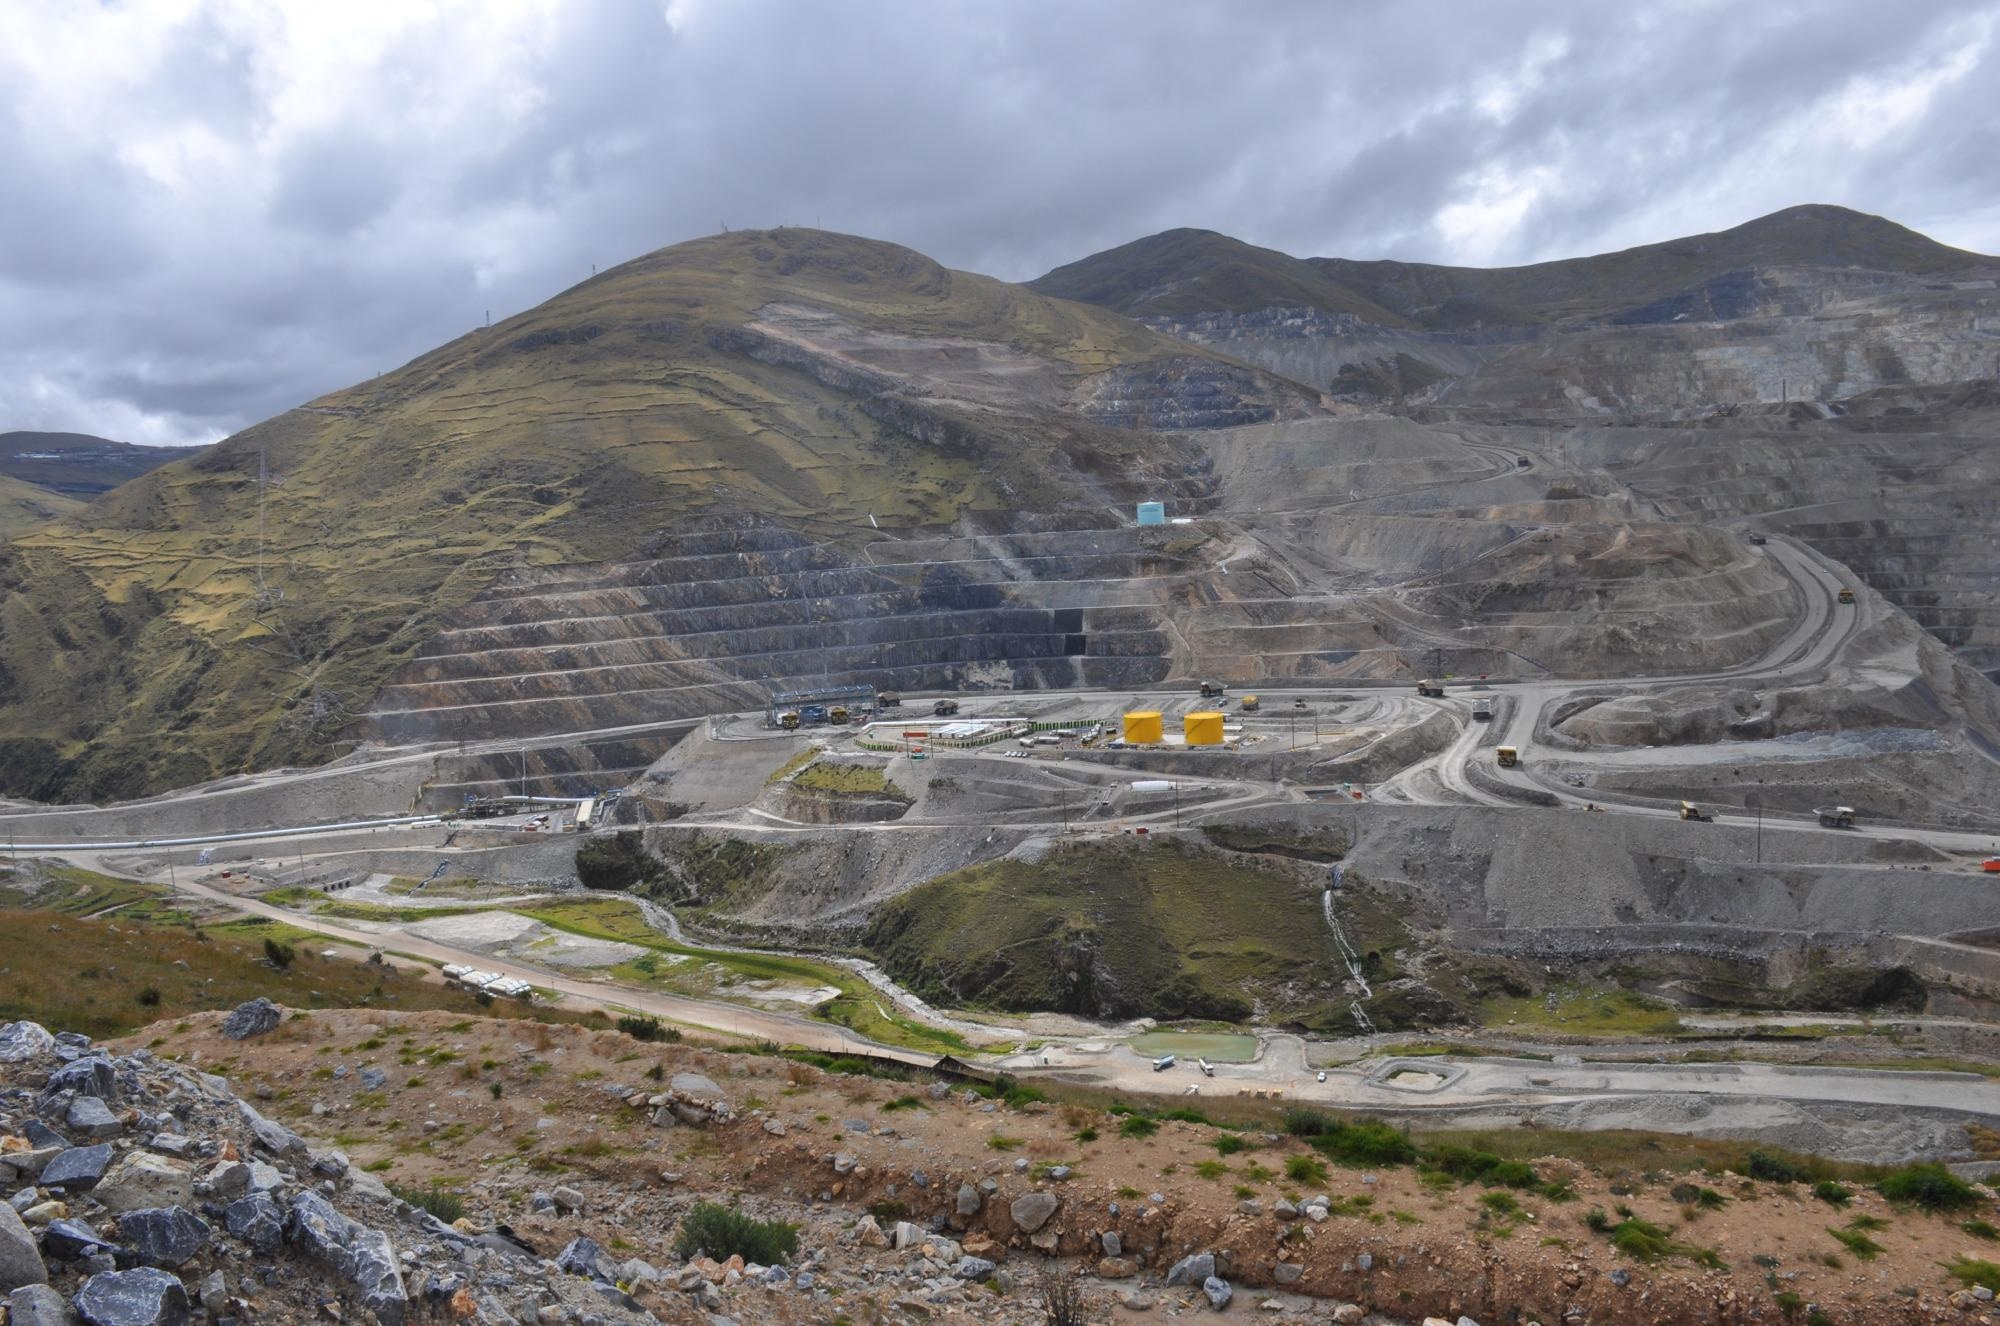 Barrick Announces its Consent to Sell Lagunas Norte Mine in Peru